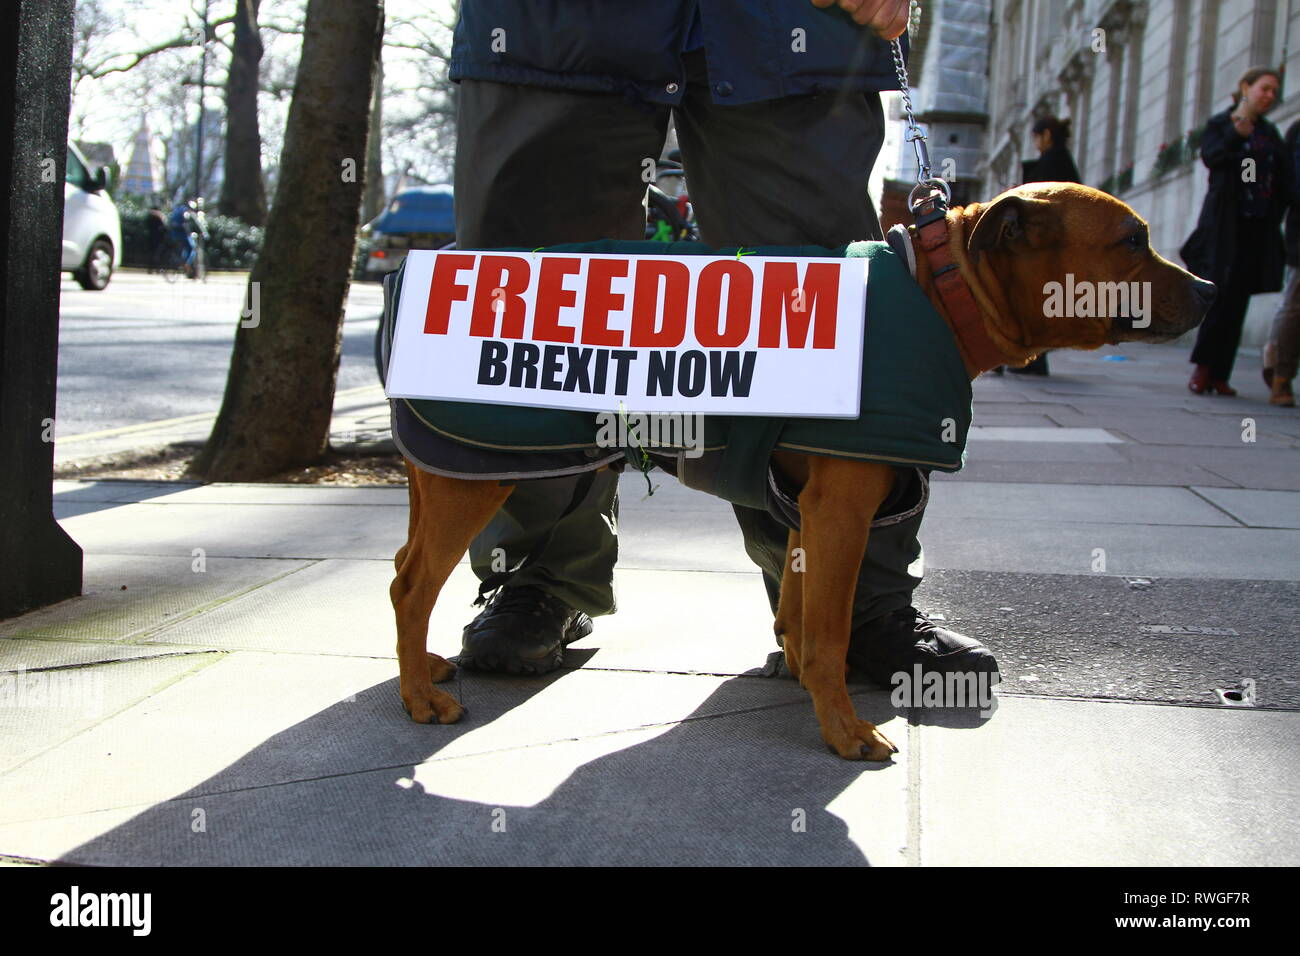 A DOG NAMED STEWART AND THE OWNER OF THE DOG ALSO NAMED STEWART STAND IN THE STREETS OF WESTMINSTER EXPRESSING PRO BREXIT SIGN FREEDOM BREXIT NOW. MOOD OF THE NATION. PUBLIC OPINION. - Stock Image